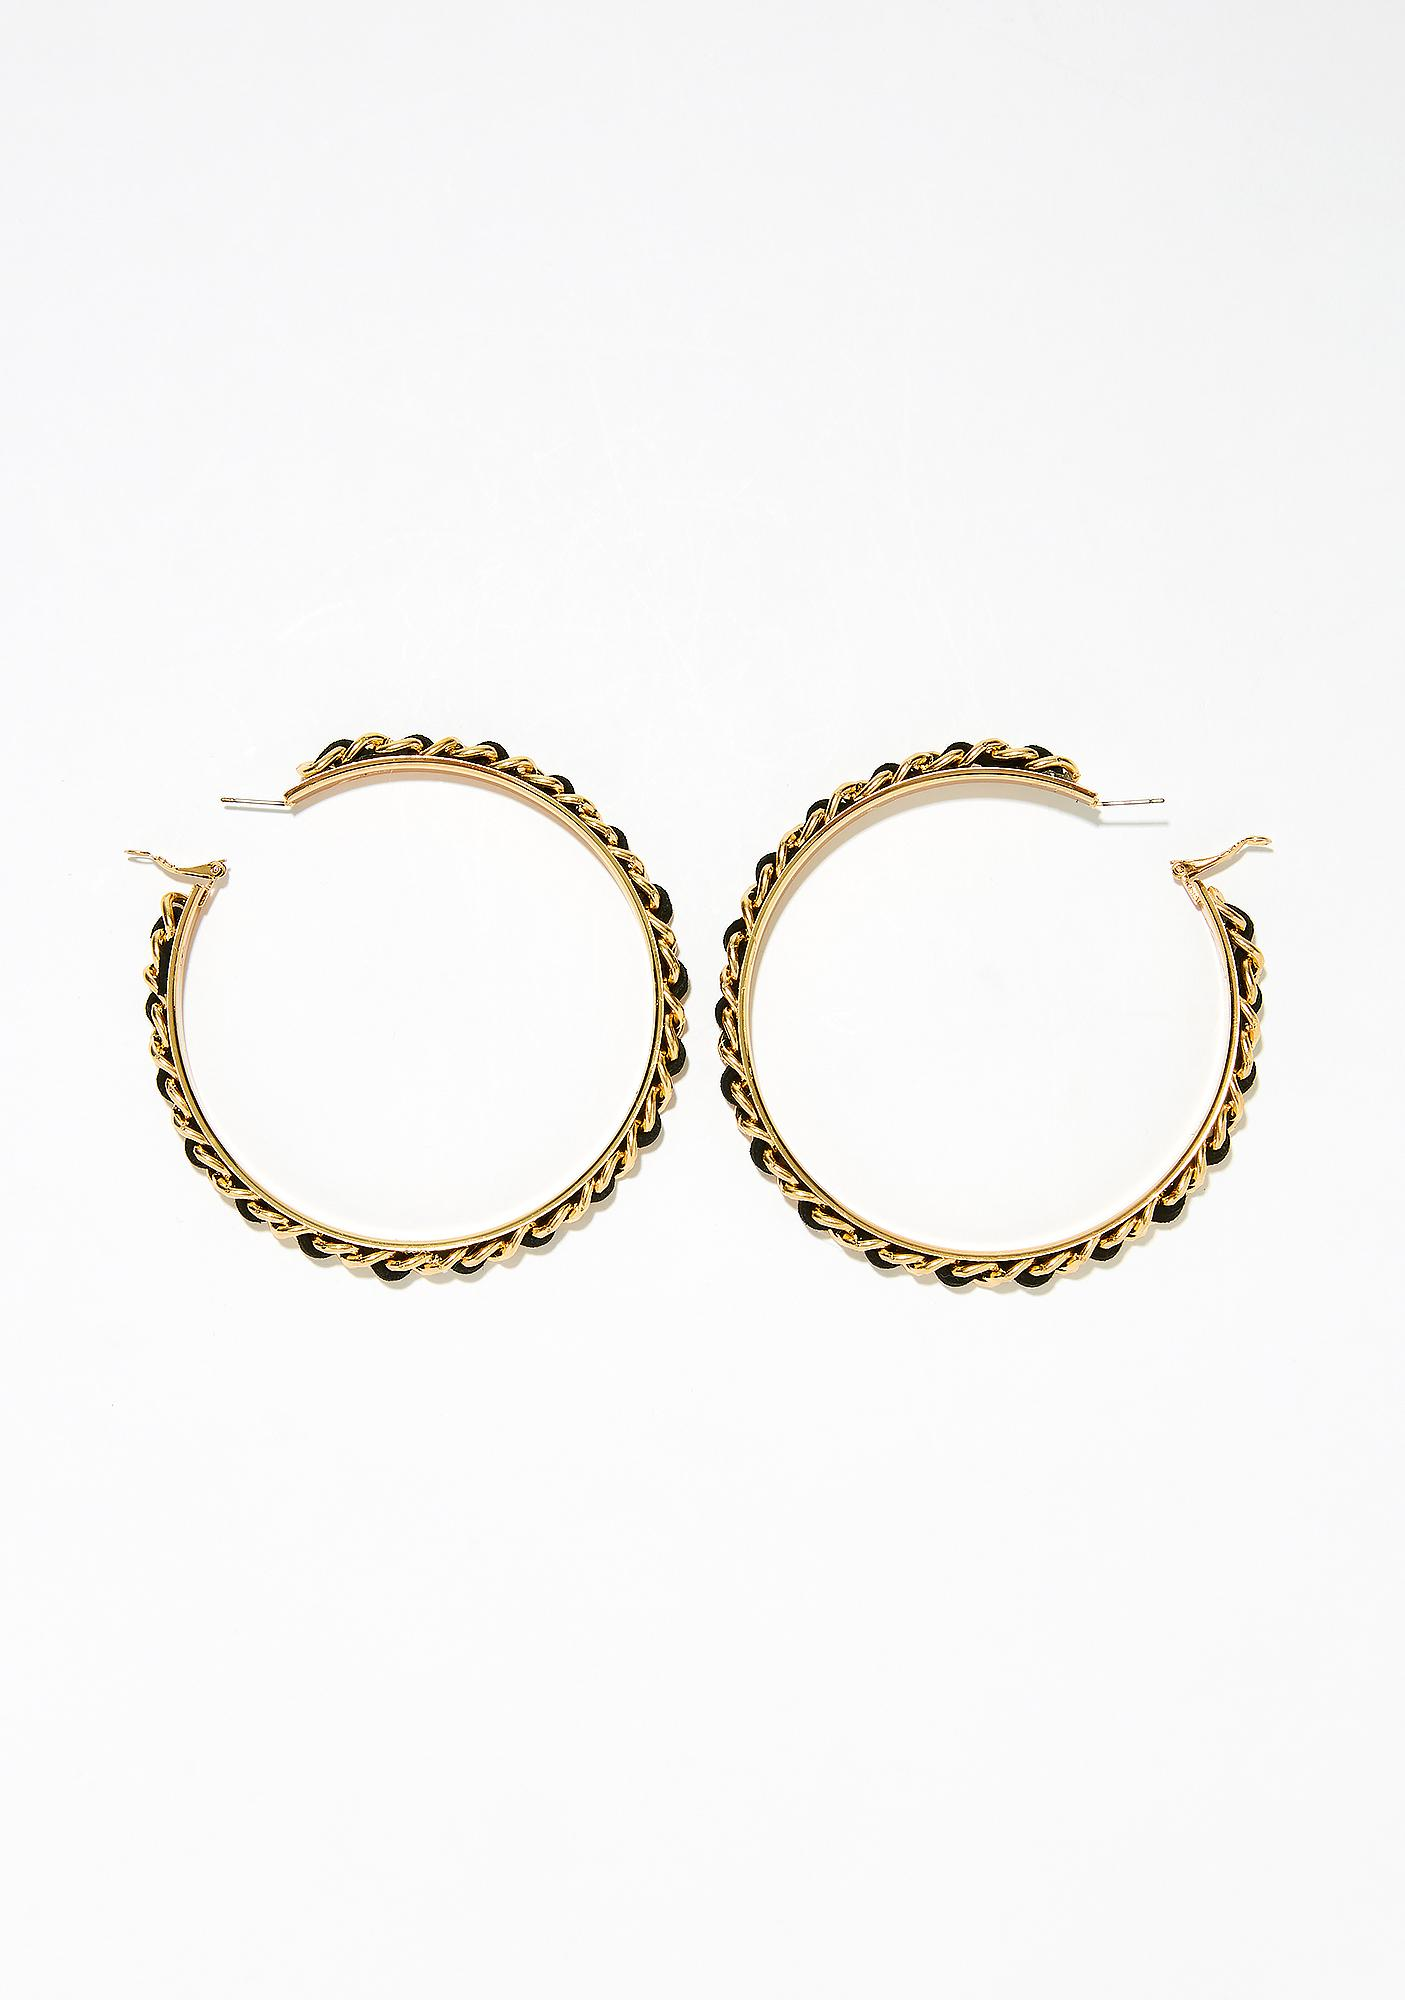 Baddie Mentality Hoop Earrings